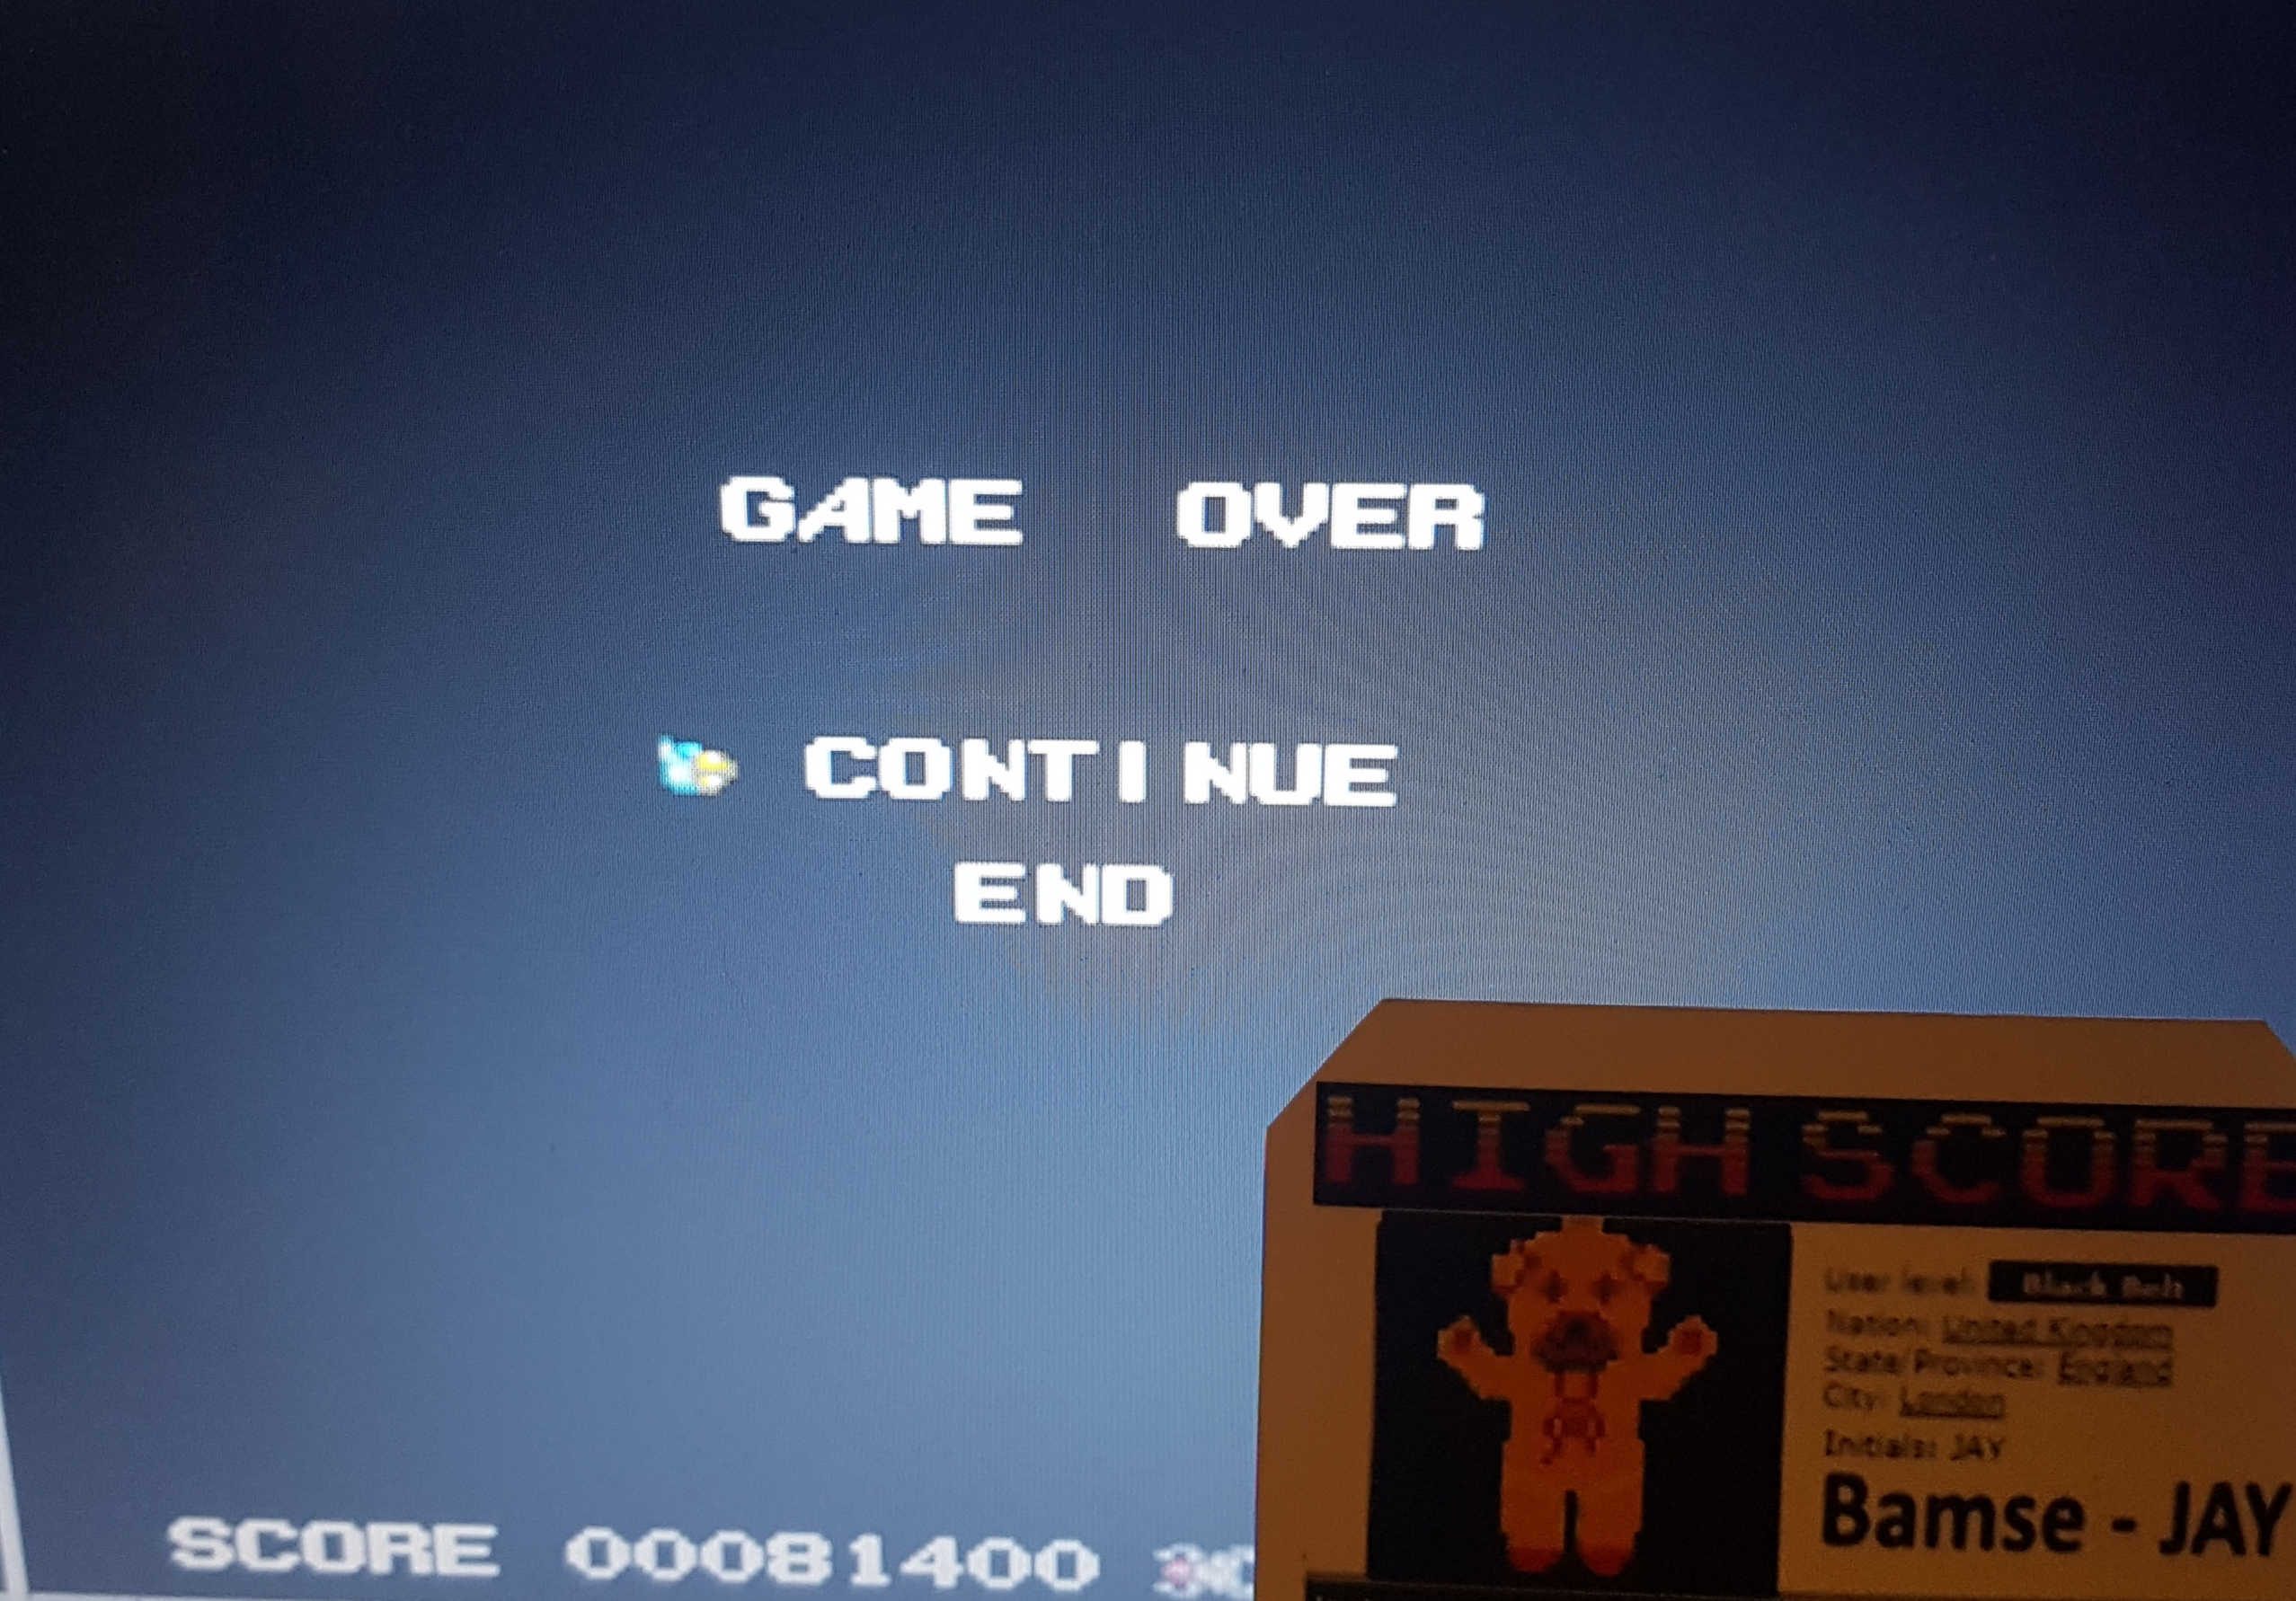 Bamse: Sinistron (TurboGrafx-16/PC Engine Emulated) 81,400 points on 2019-10-18 15:04:11